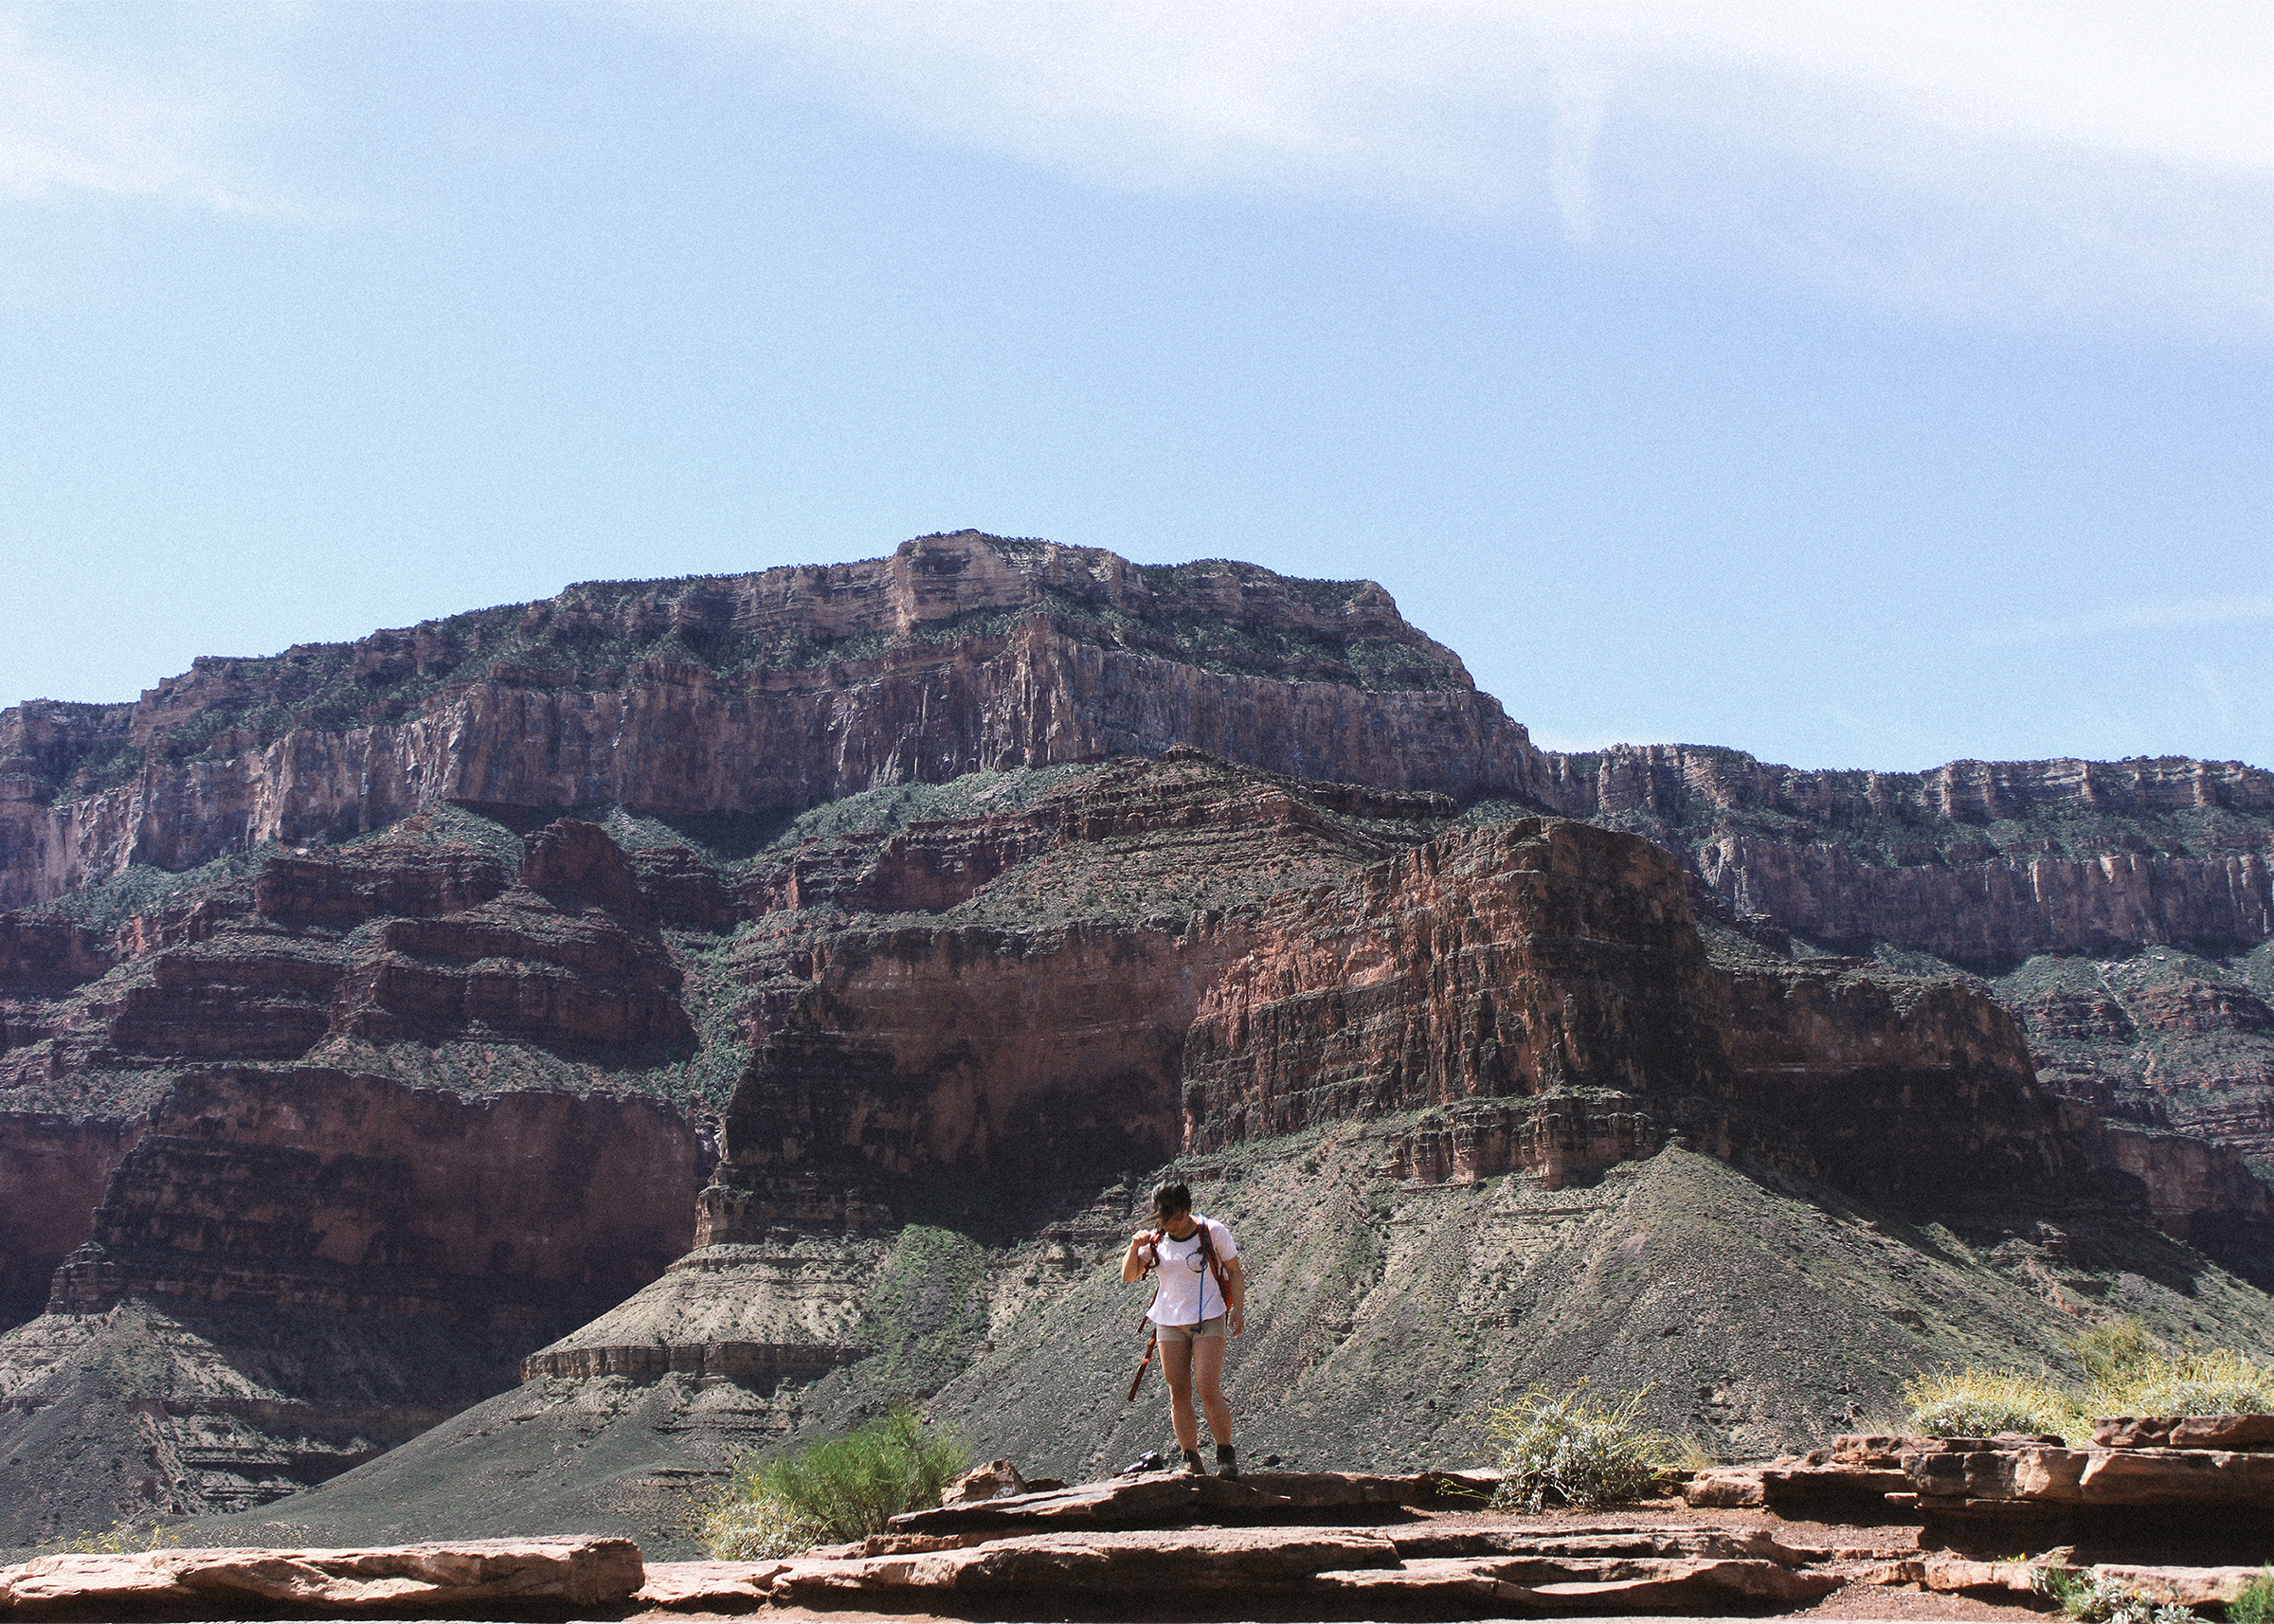 Jennifer standing with the red rocks in the background.